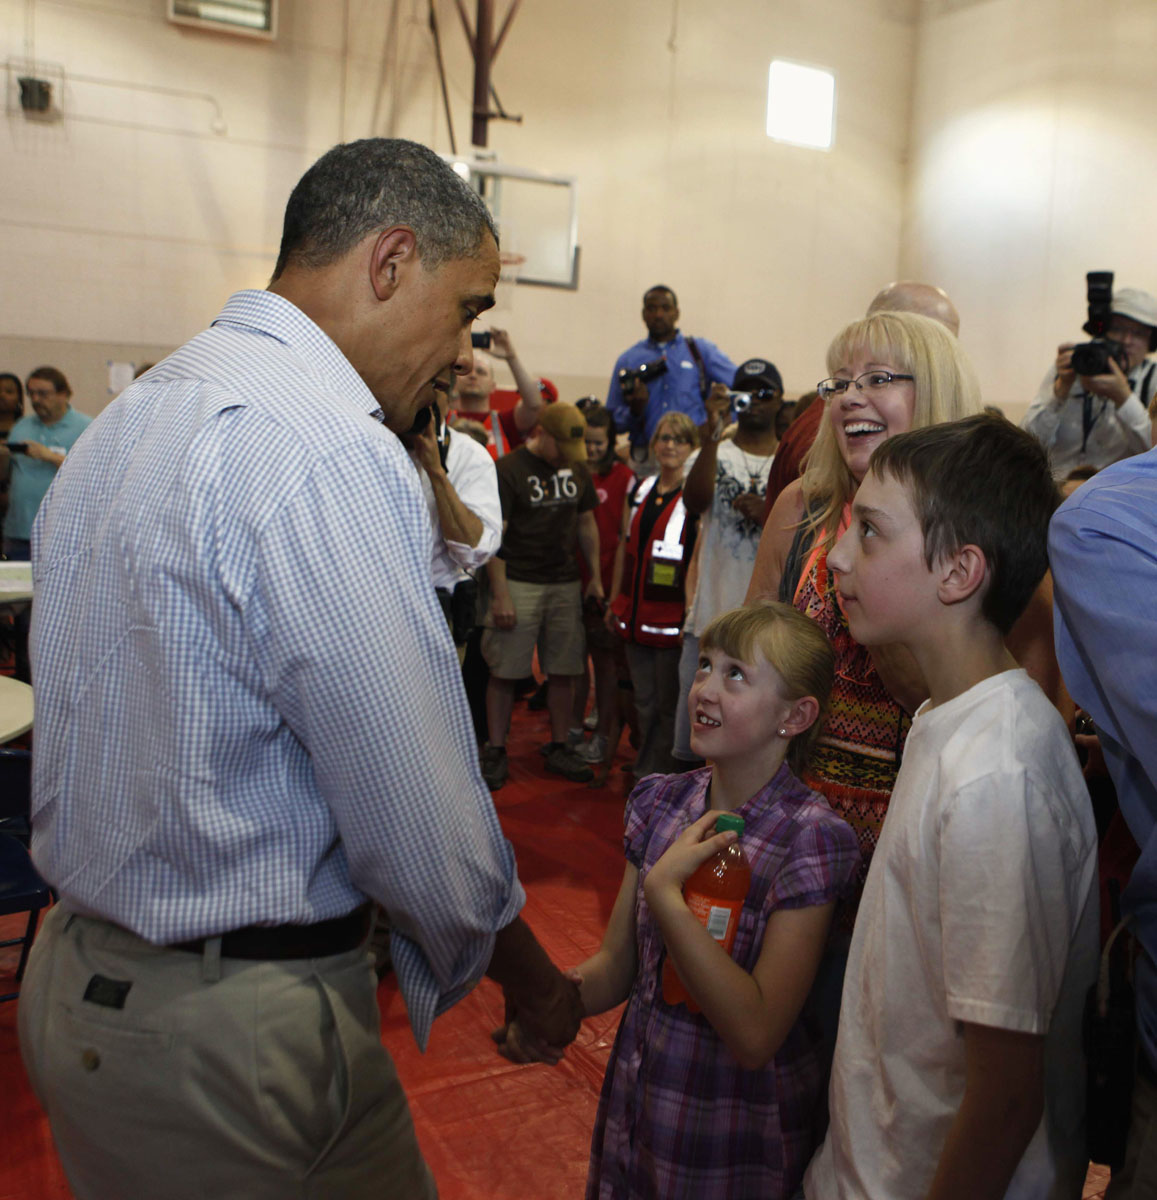 JUNE 29: U.S. President Barack Obama (R) greets children at an evacuation center at a YMCA in Colorado Springs, June 29, 2012. Obama declared local areas earlier today as a federal disaster area releasing federal funds to help fight the blazes. (Larry Downing/Reuters)